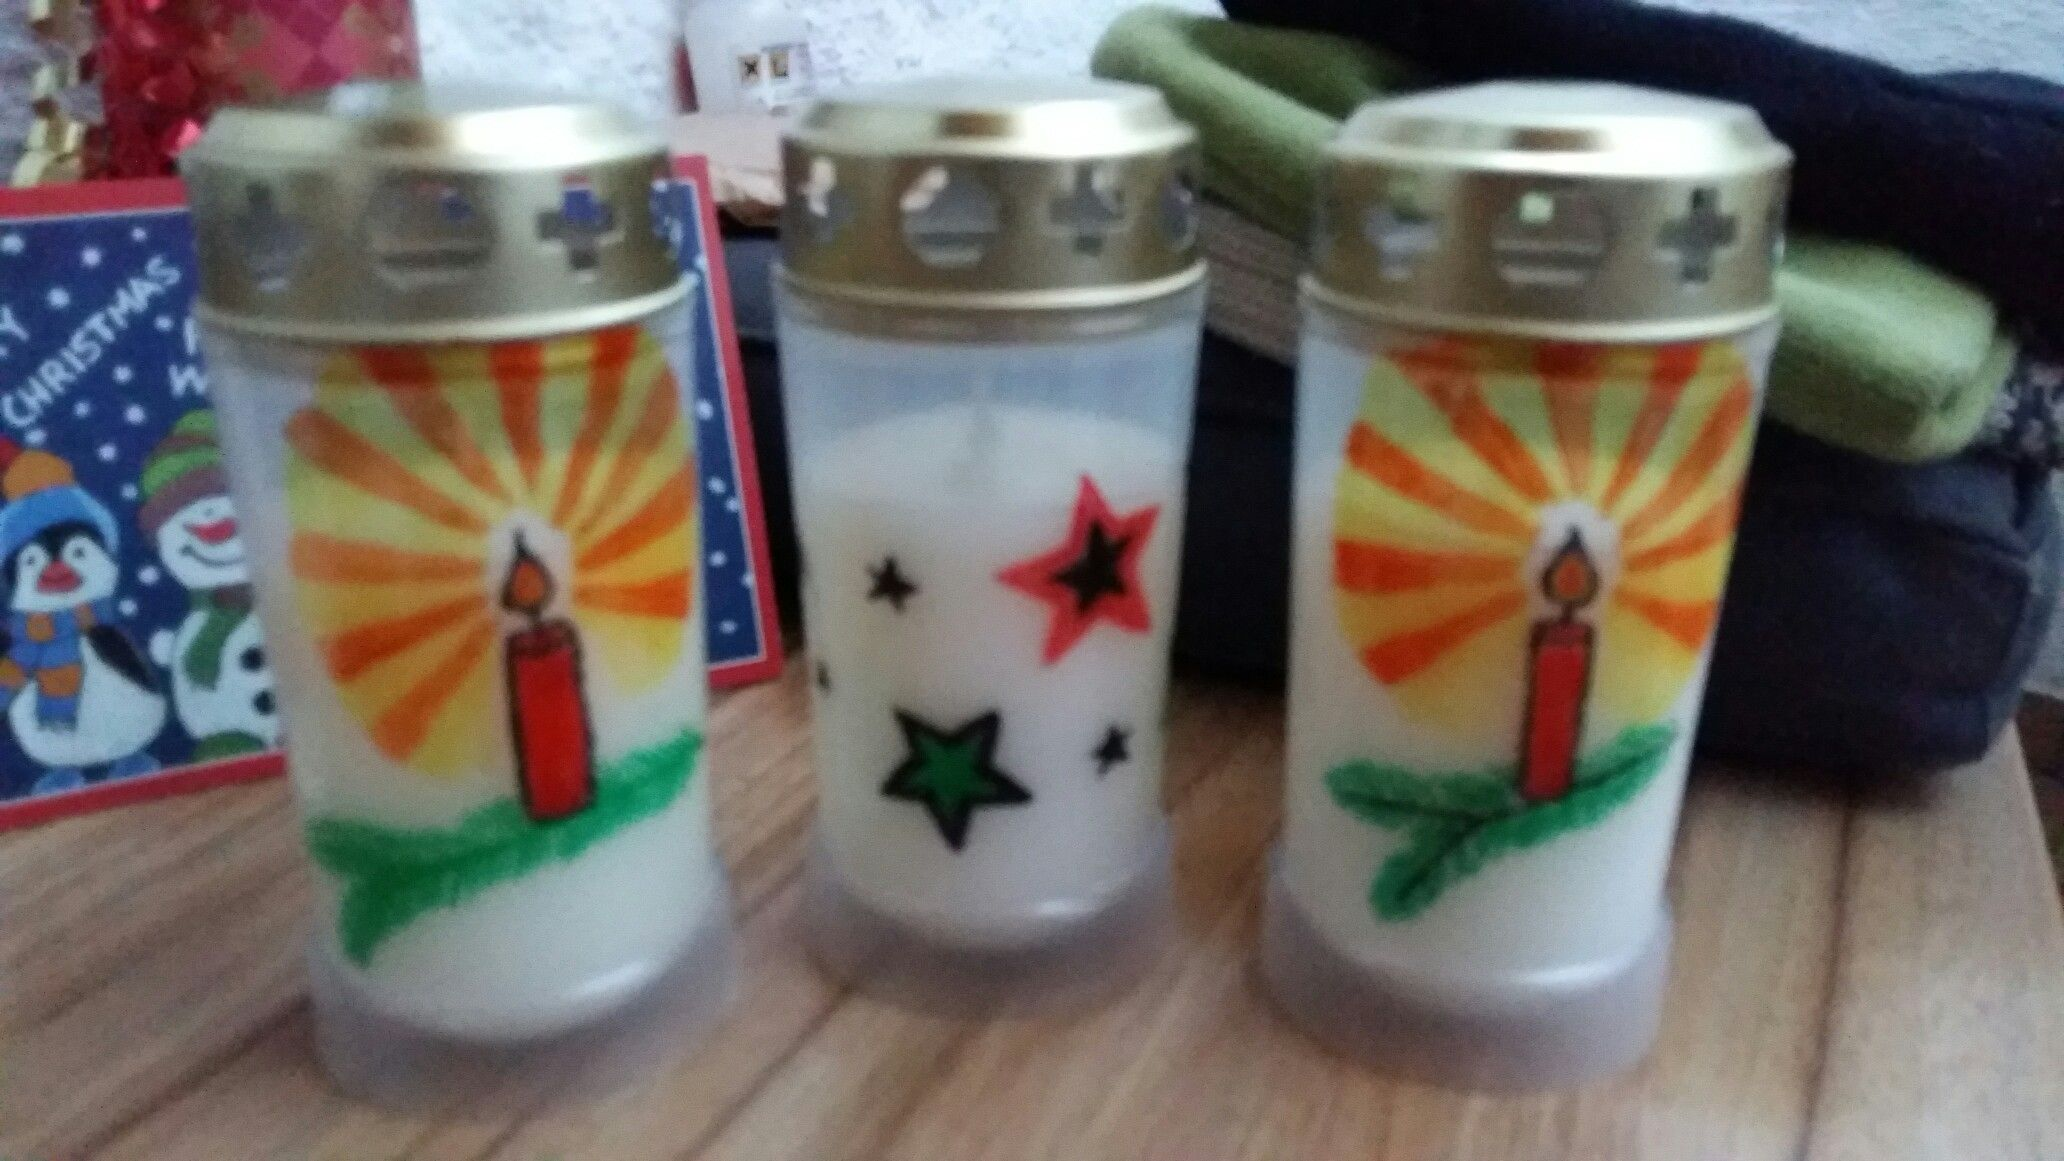 Grabkerze Painted Grave Candle Light Candle Christmas Edition